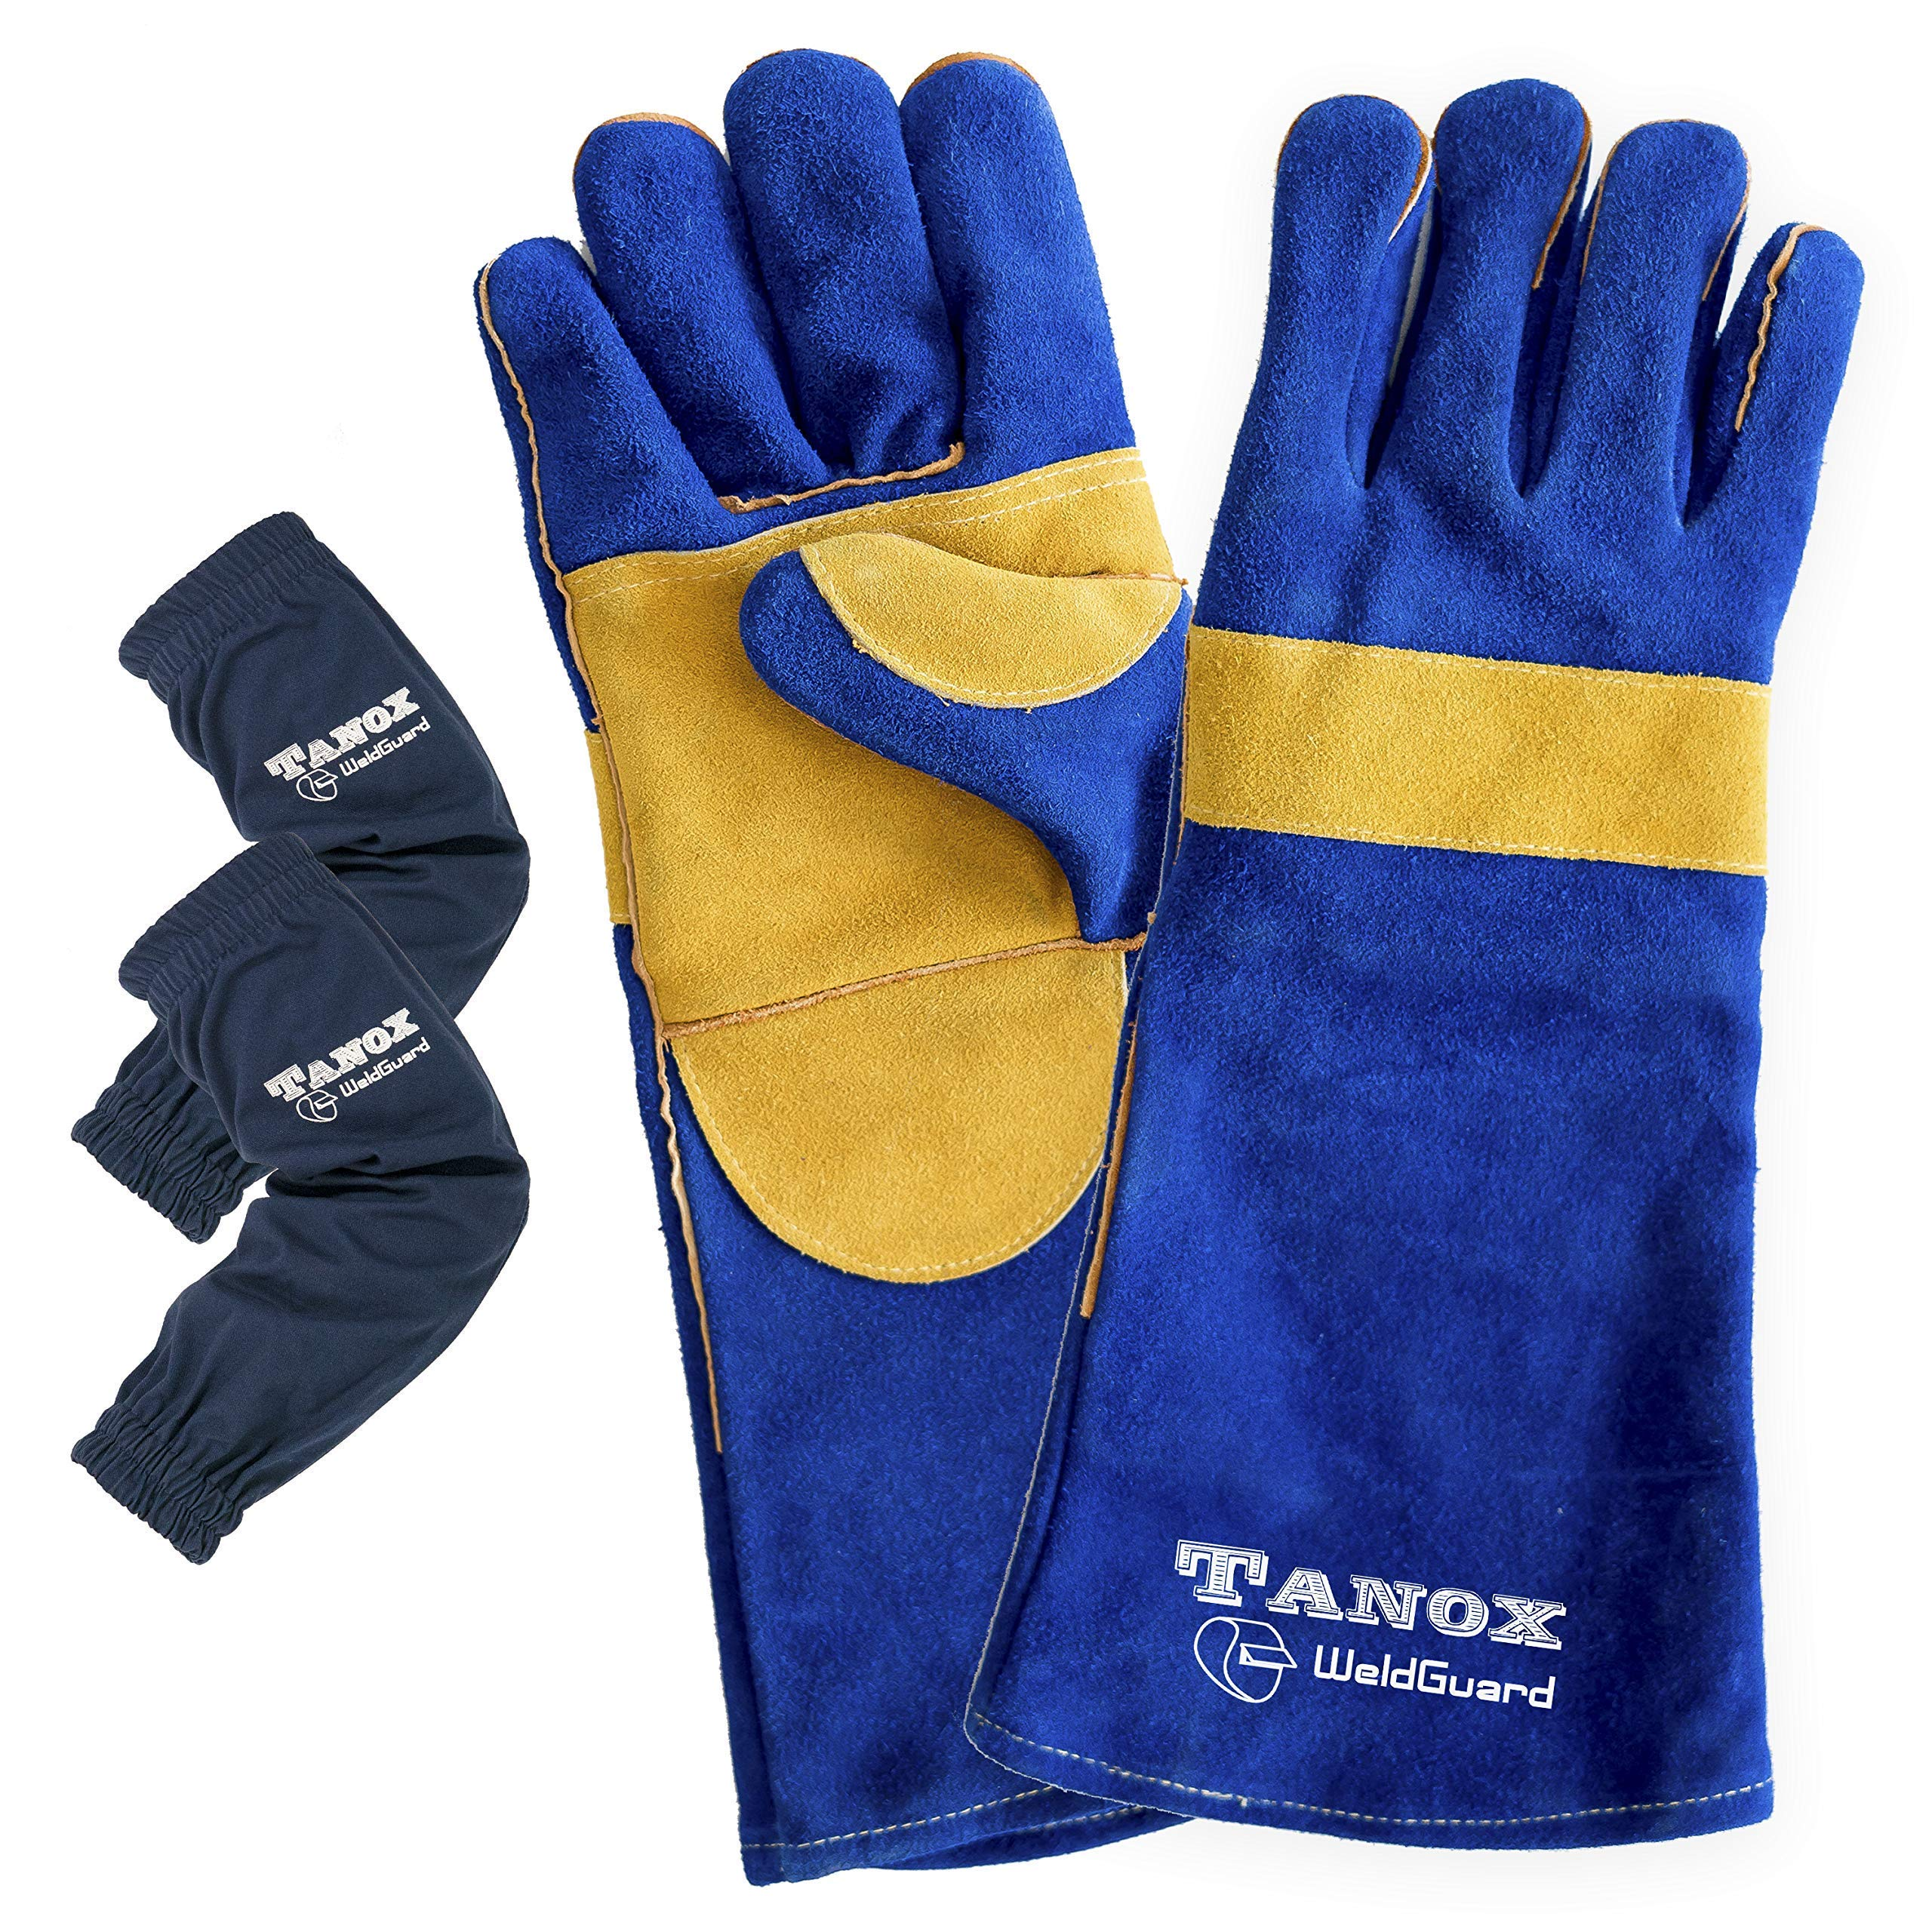 Tanox Leather Welding Gloves and Sleeves: Extreme Heat and Fire Resistant Reinforced Versatile Gloves with Protective Cotton Armwear with Elastic Cuffs by Tanox